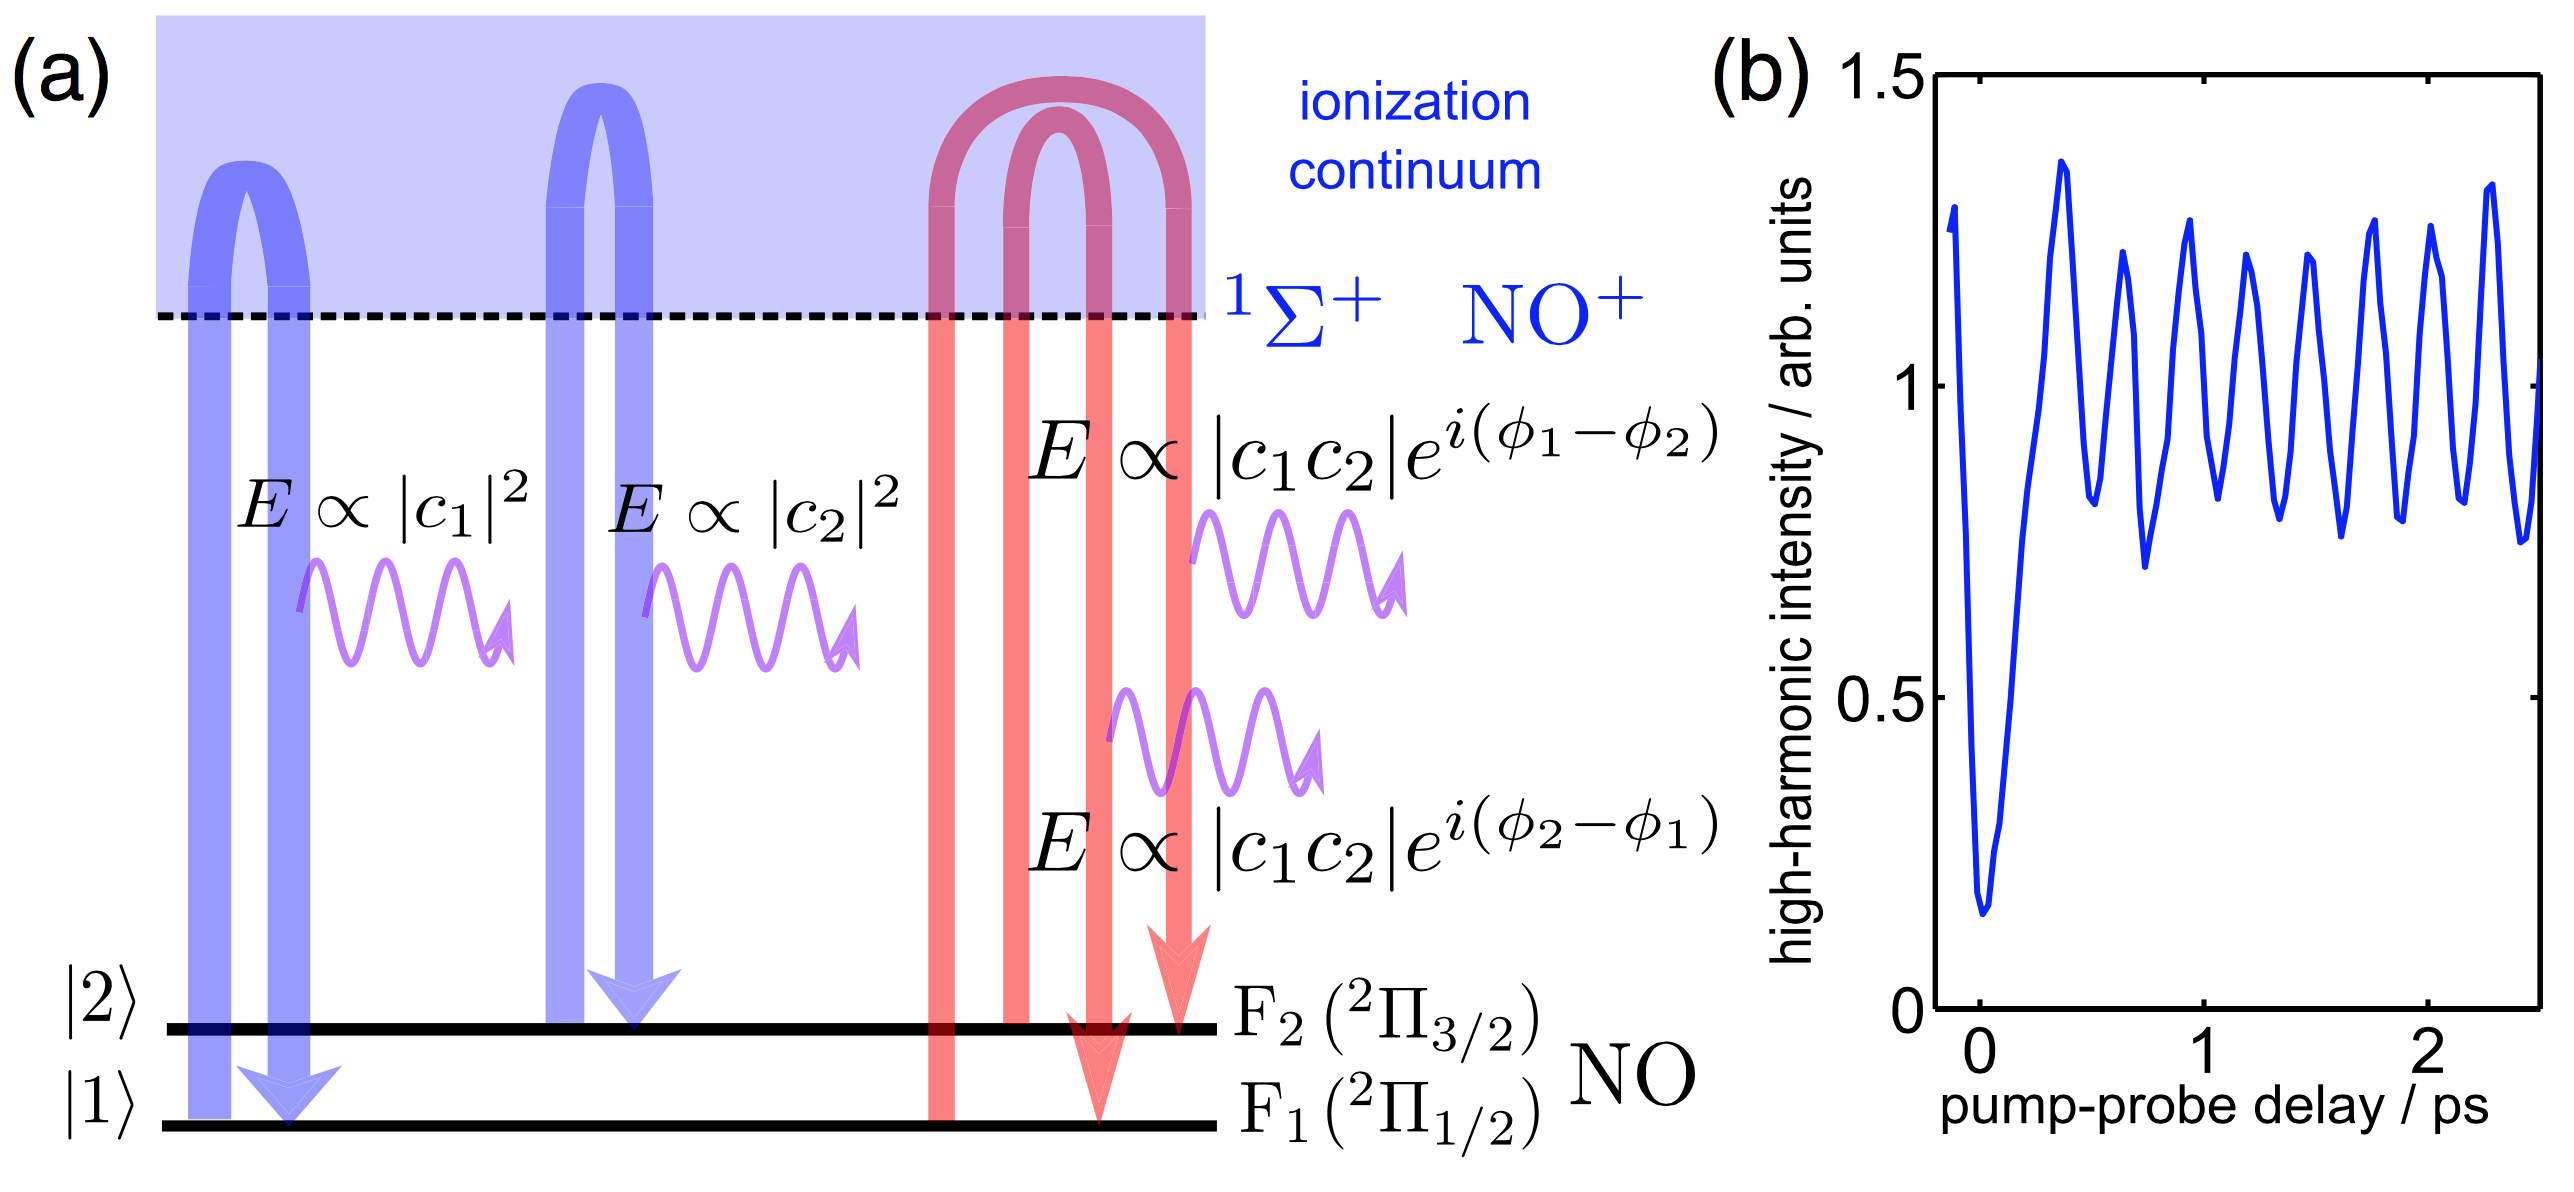 high harmonic generation thesis On sep 1, 2008, edward thomas foss rogers published a research thesis starting with the following thesis statement: high harmonic generation (hhg) is now an accepted.